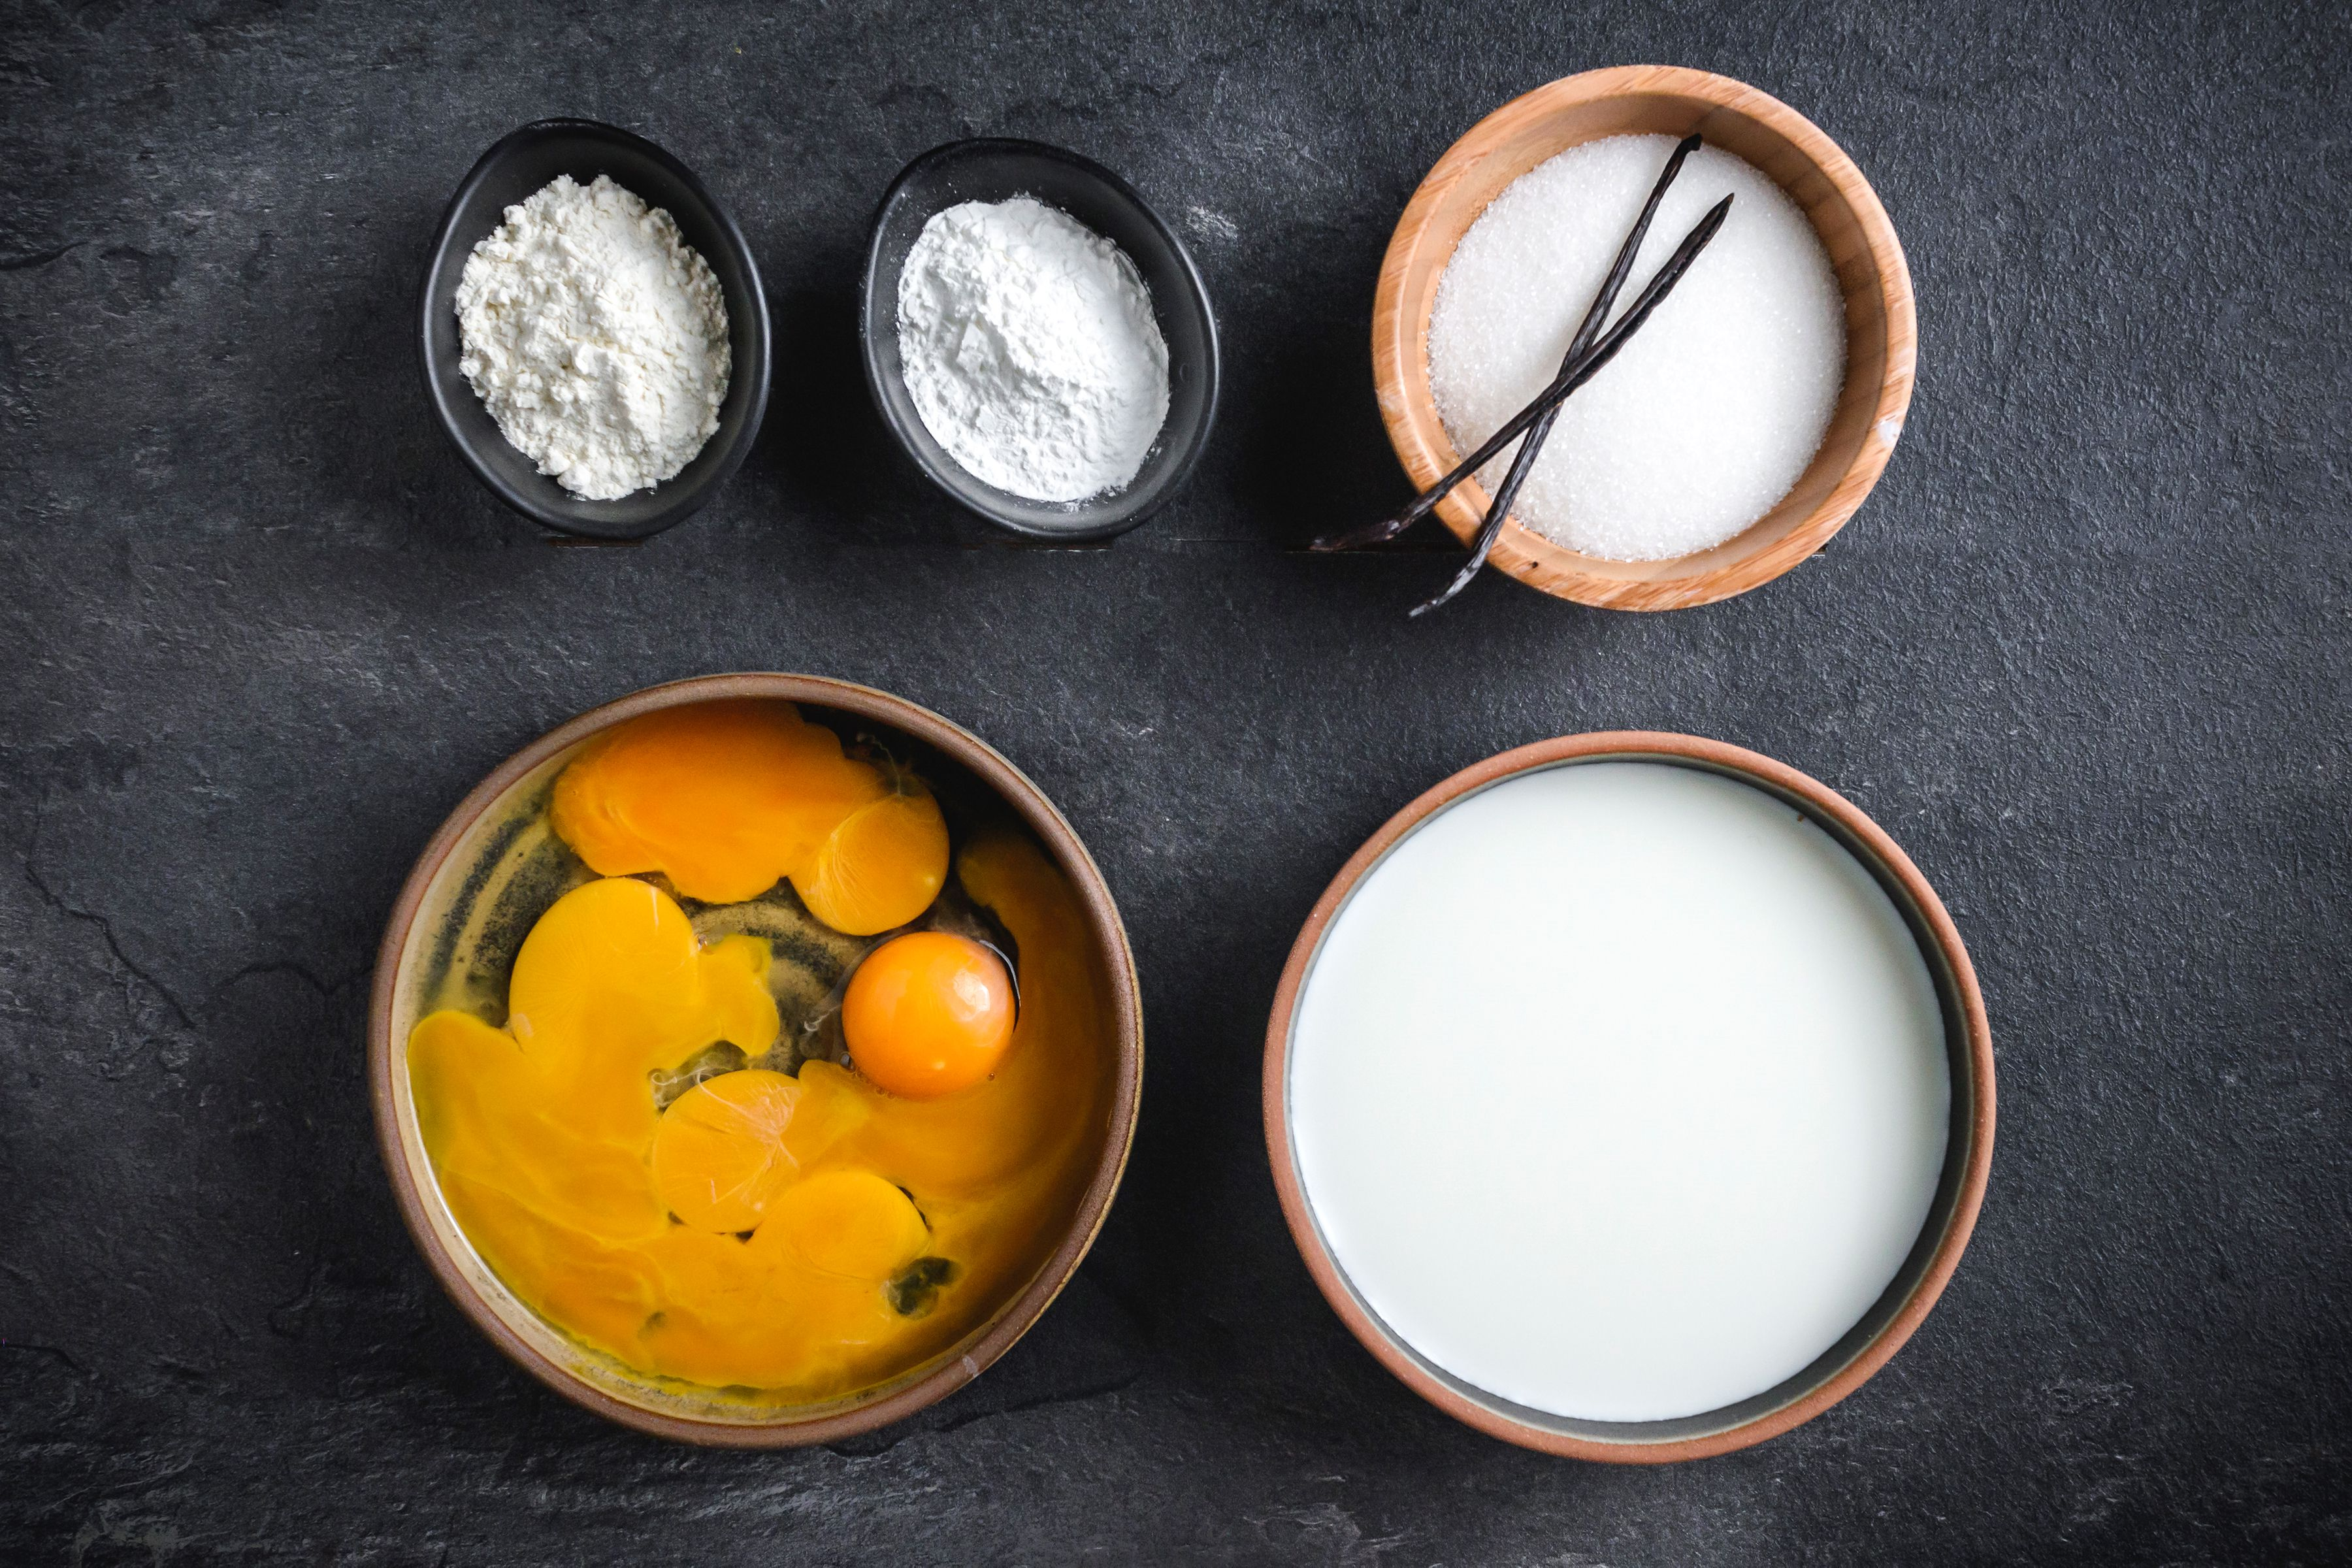 Ingredients for creme patissiere pastry cream